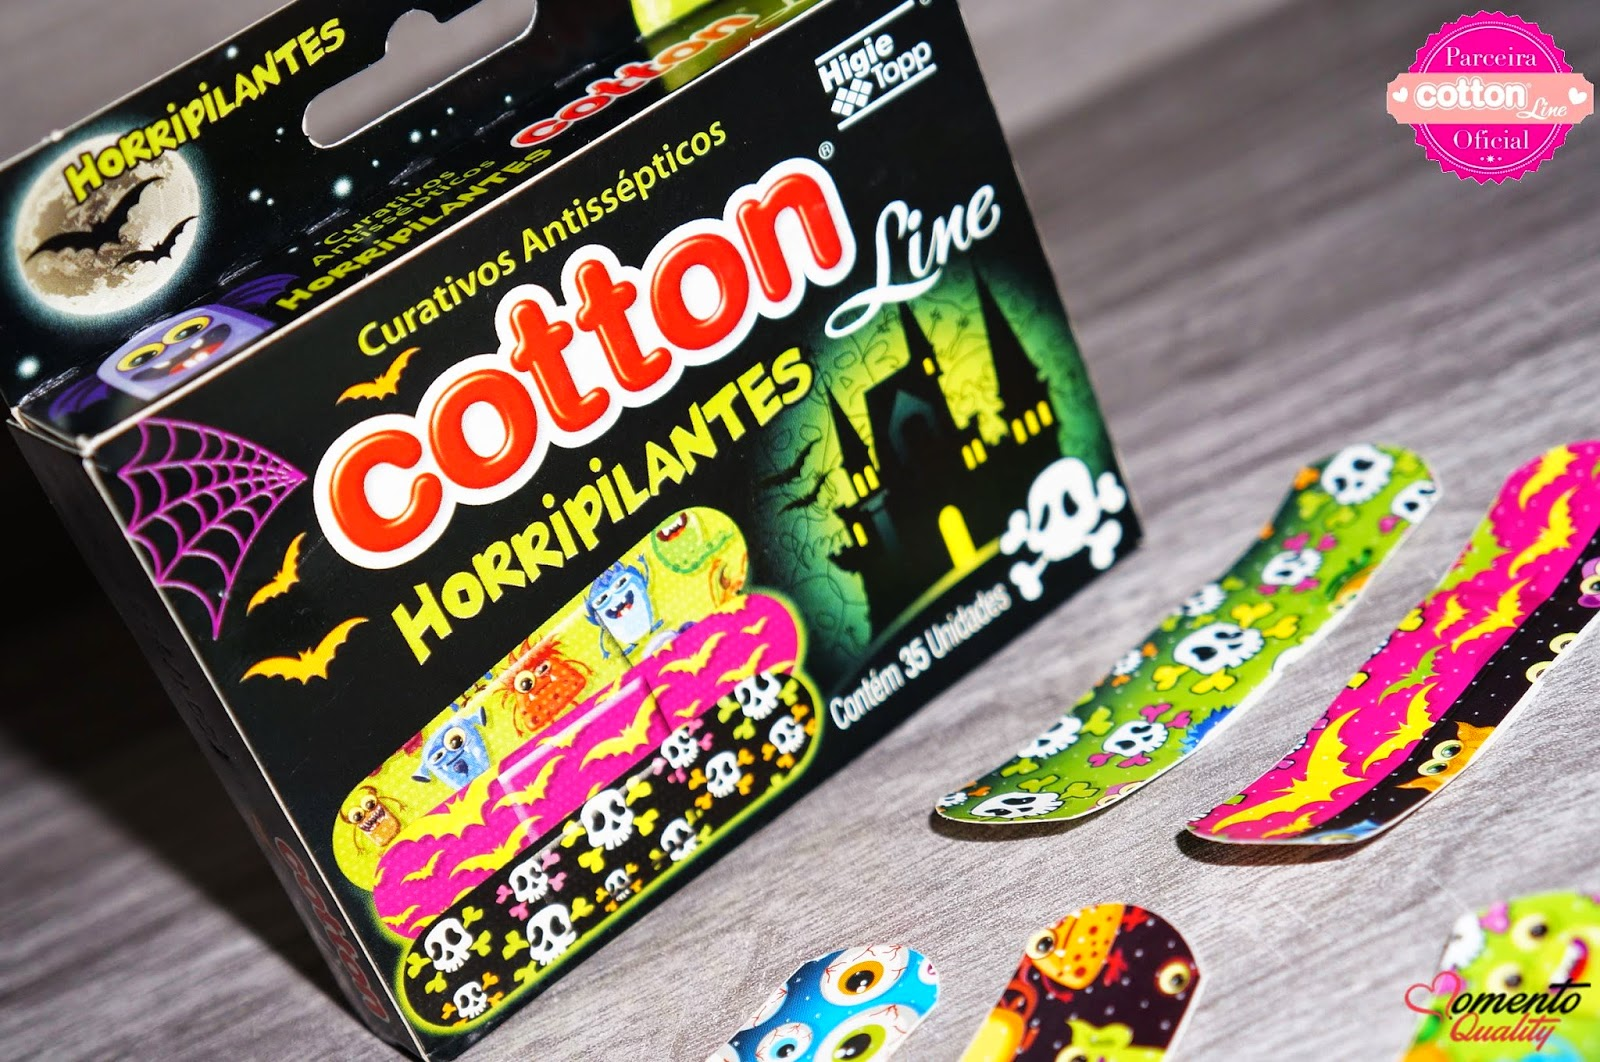 Curativos Horripilantes Cotton Line